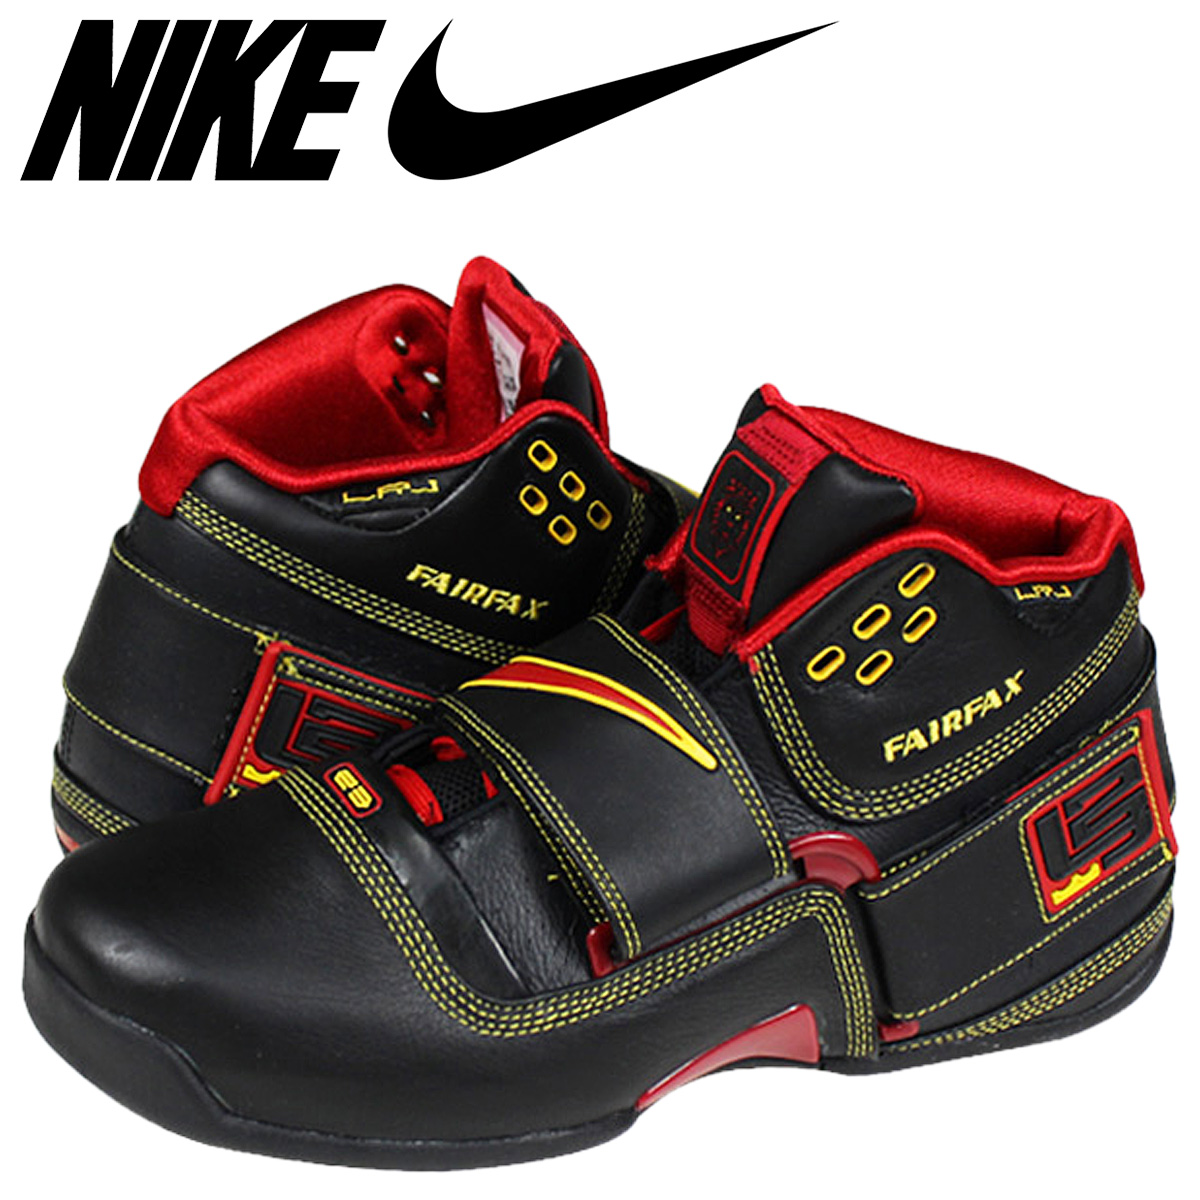 new concept 50447 d8a31 Nike NIKE zoom soldier sneaker ZOOM SOLDIER LeBron James 316643-062 black  red mens ...